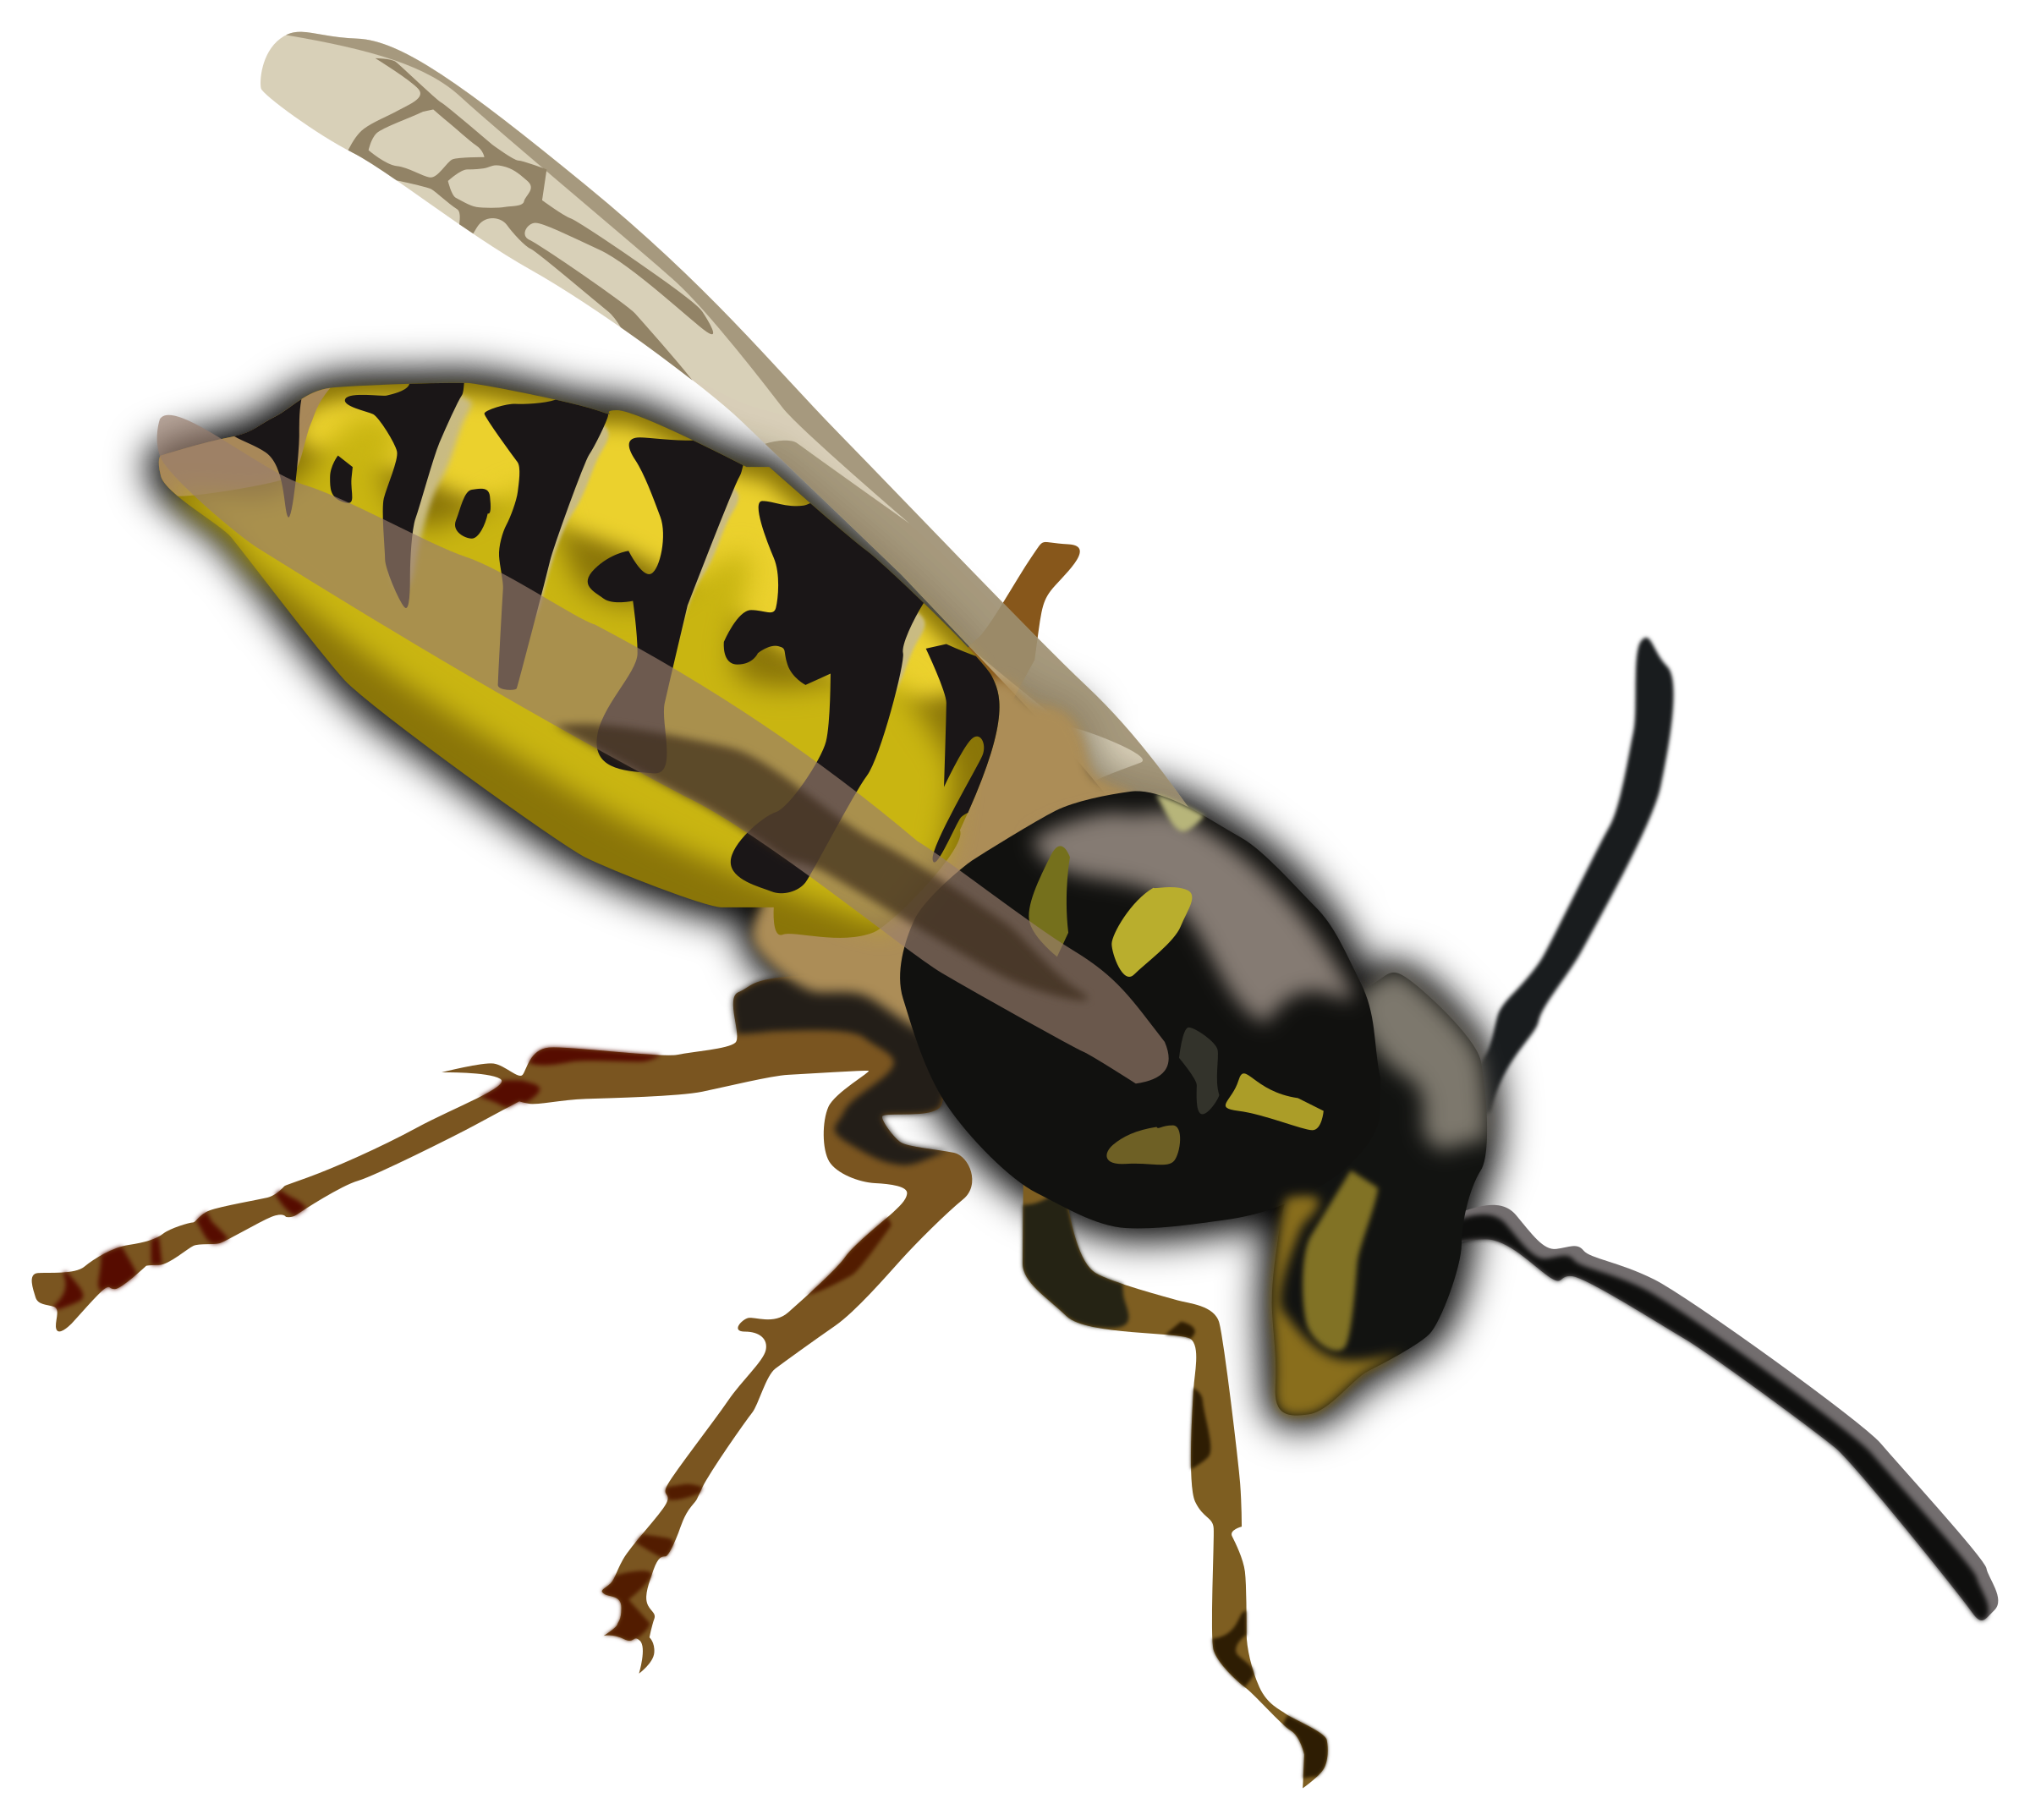 Wasp by pesasa